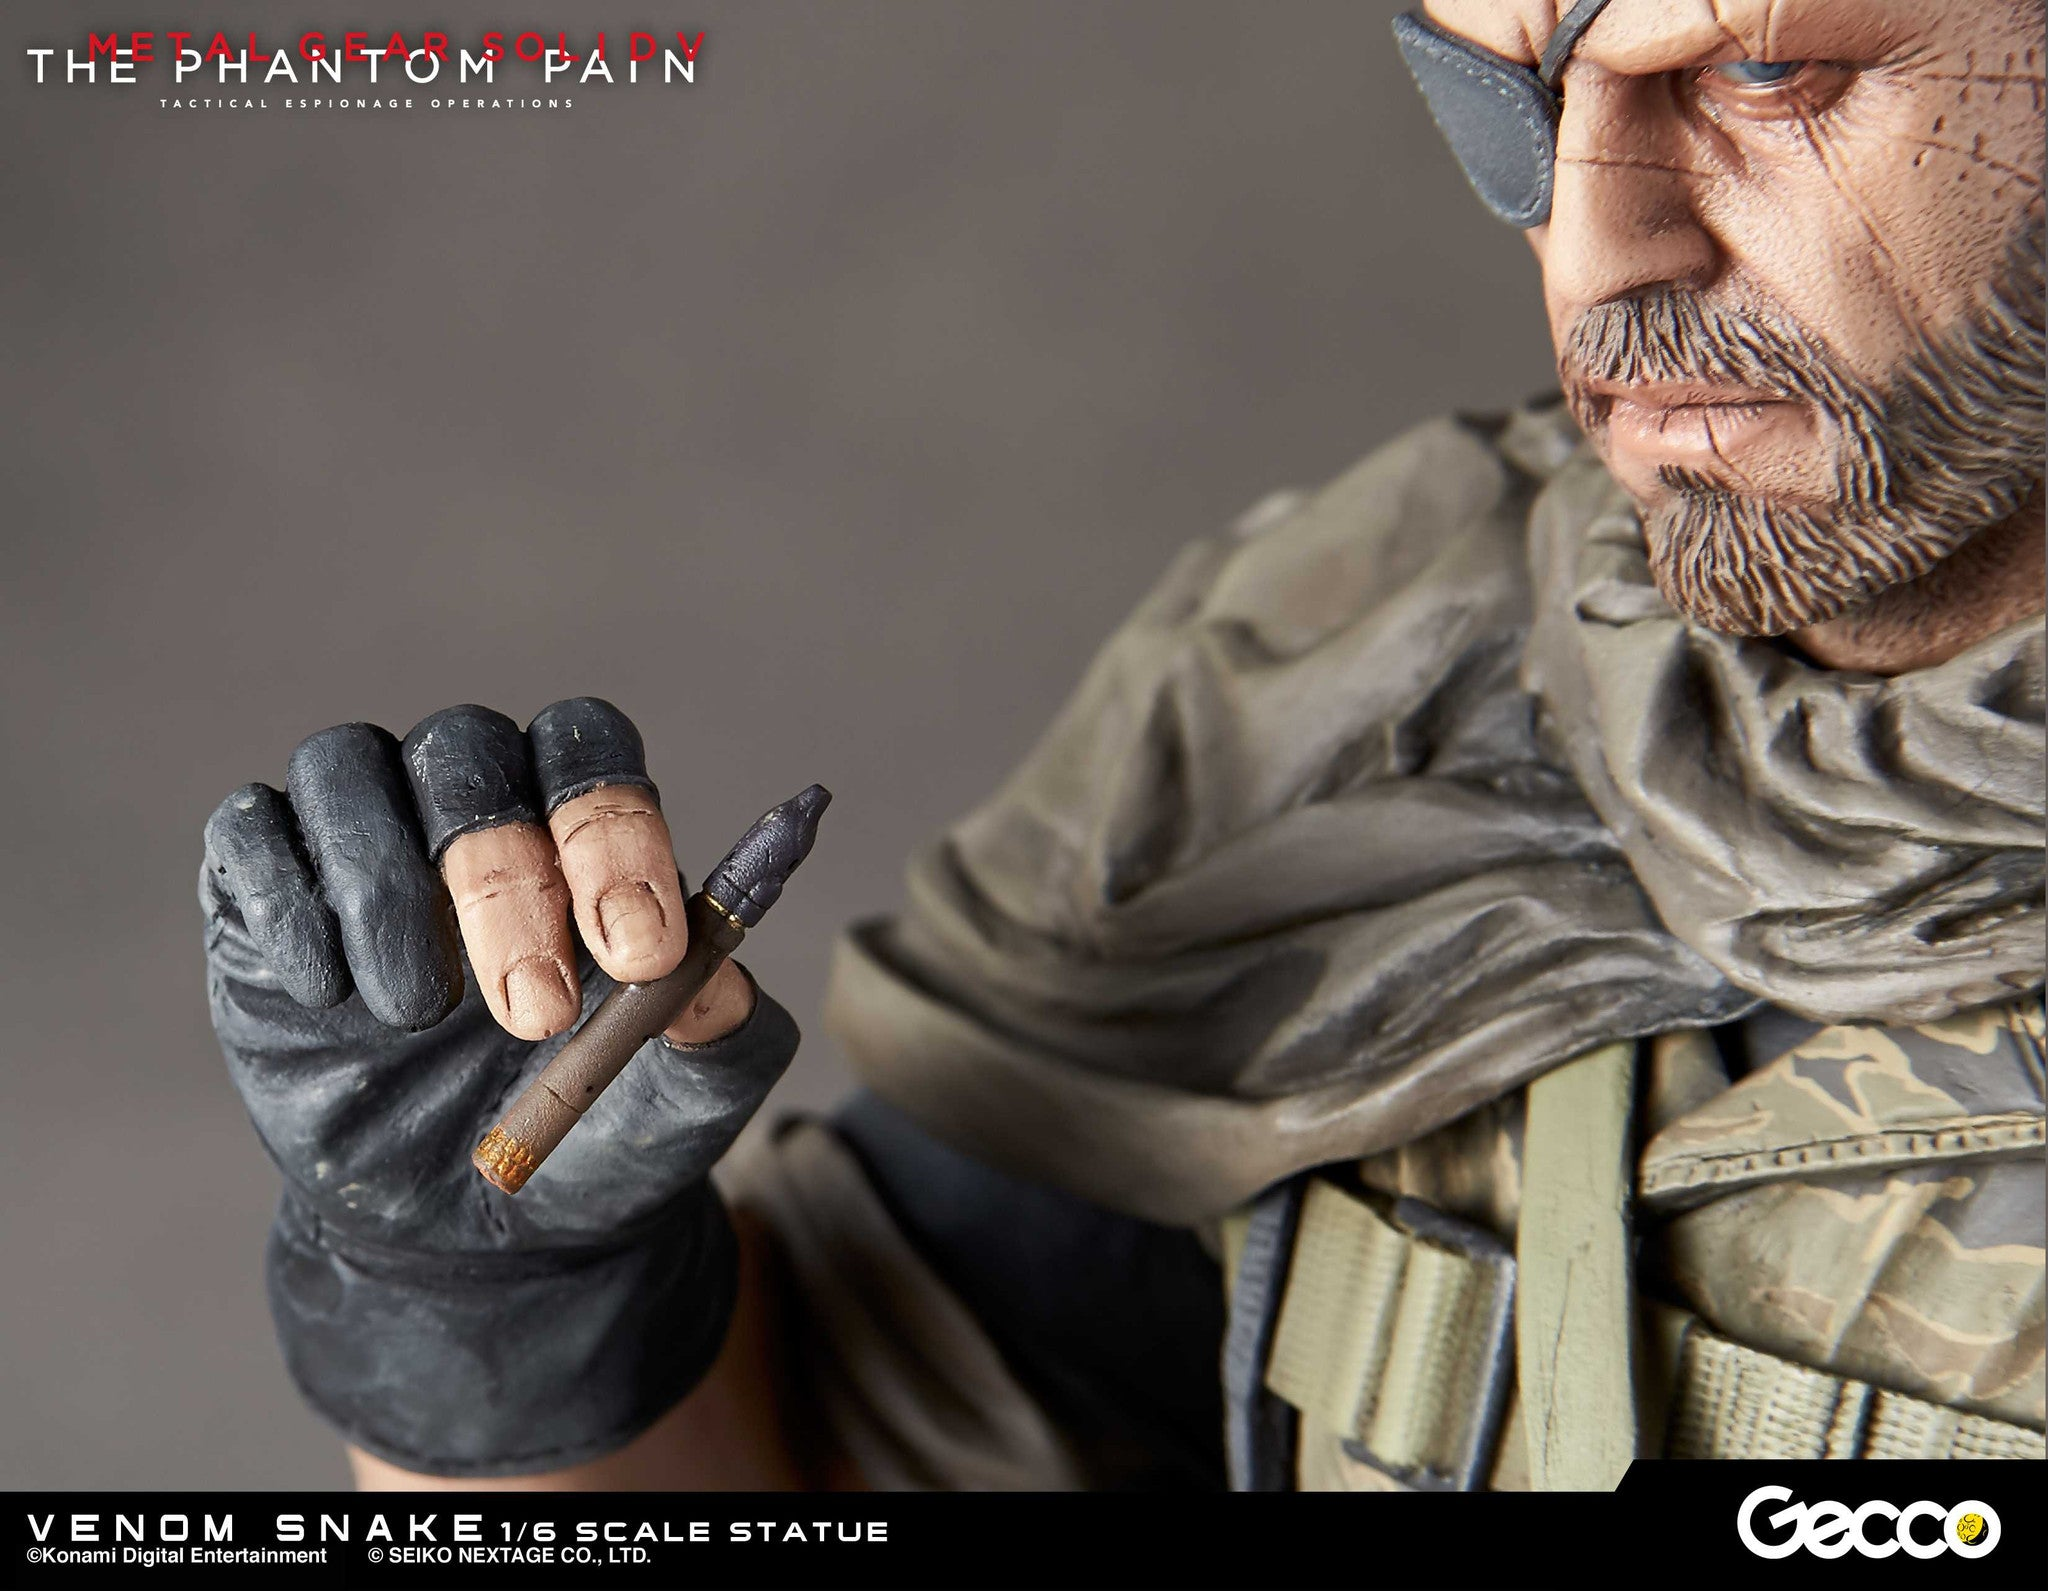 Gecco - Metal Gear Solid V: The Phantom Pain - Venom Snake 1/6 Scale Statue - Marvelous Toys - 26